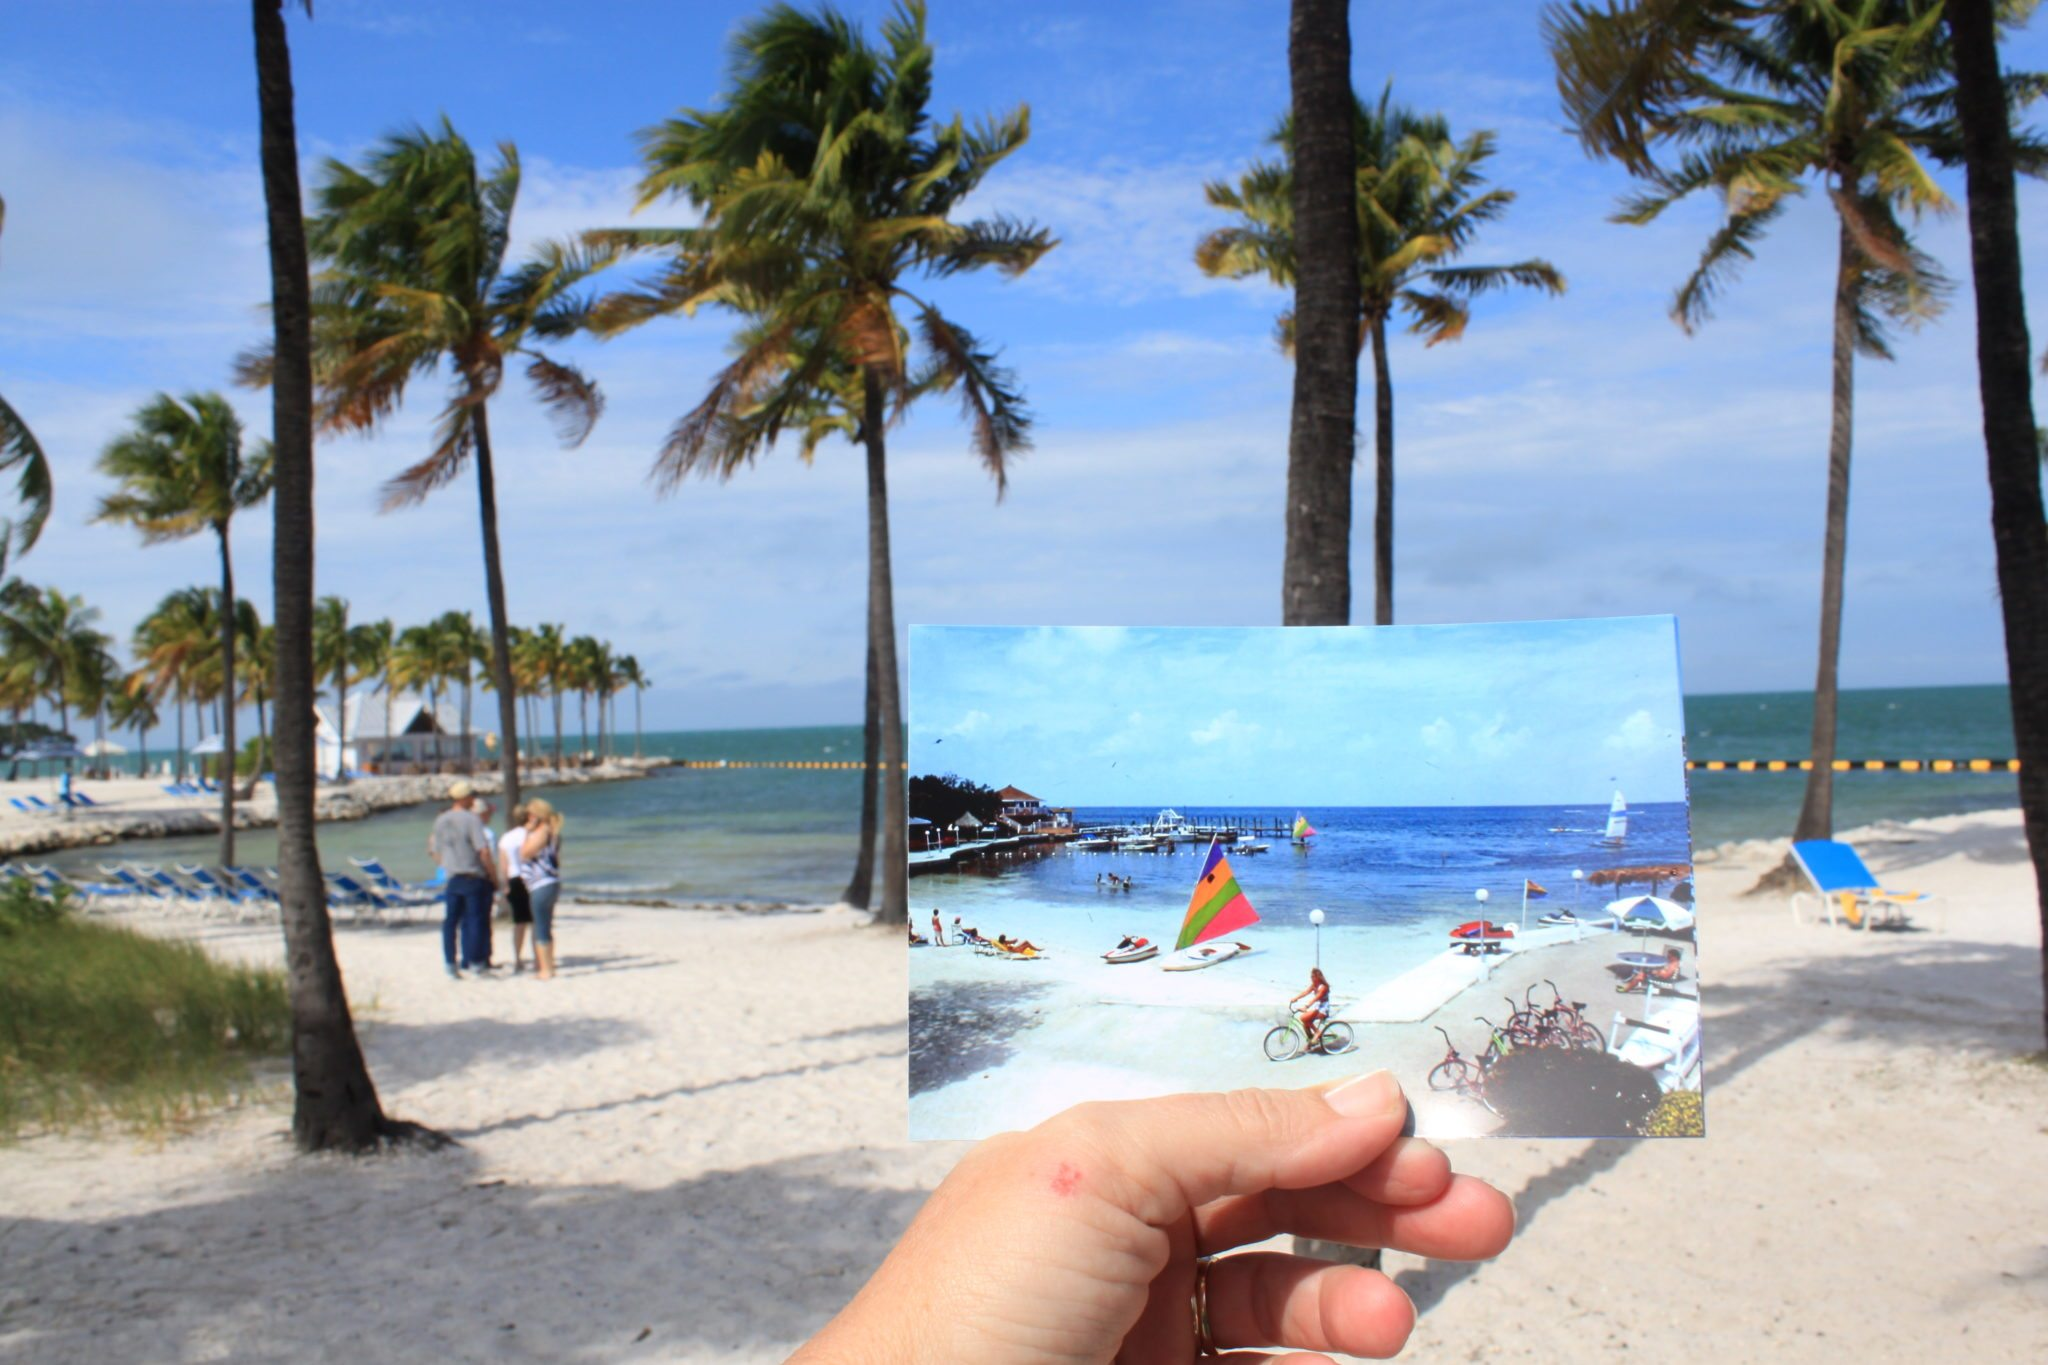 This is a before and after look at the gulfside of Marathon. What was once Buccaneer Resort, one of Marathon's first luxury hotels, is now Tranquility Bay.